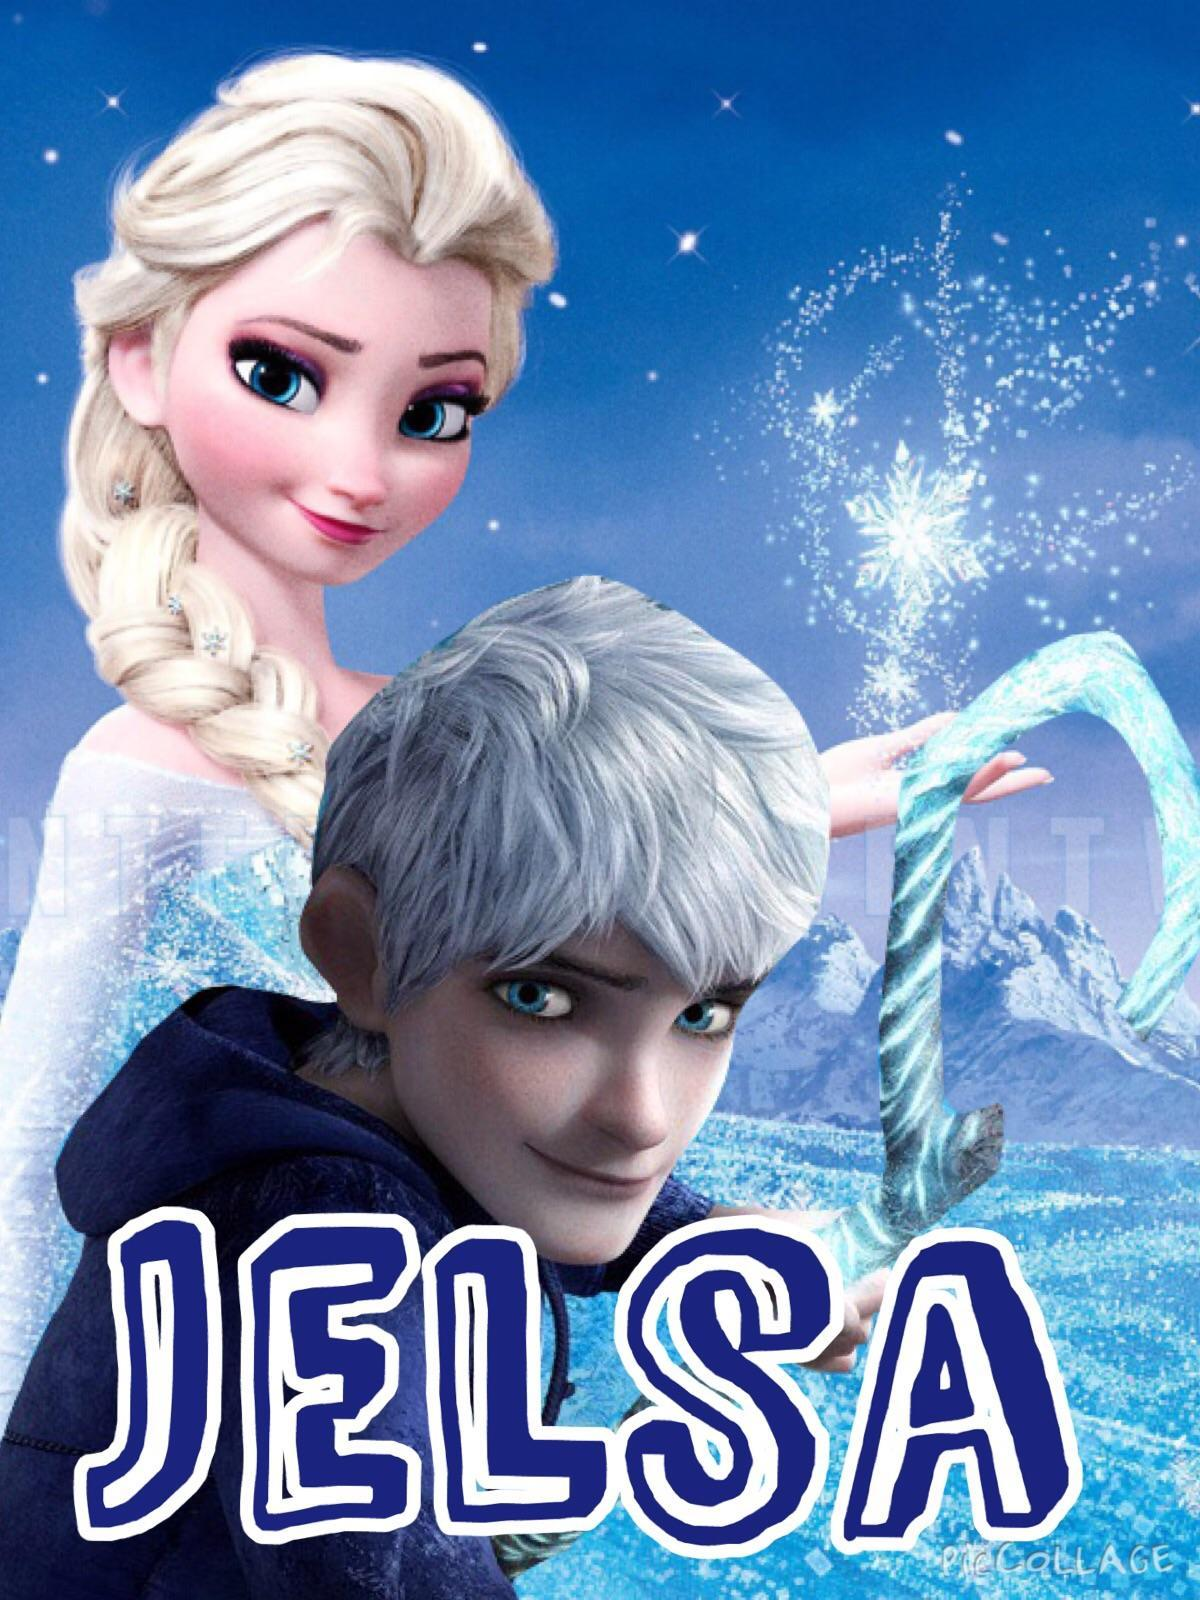 What kind of a Jelsa fan are you?